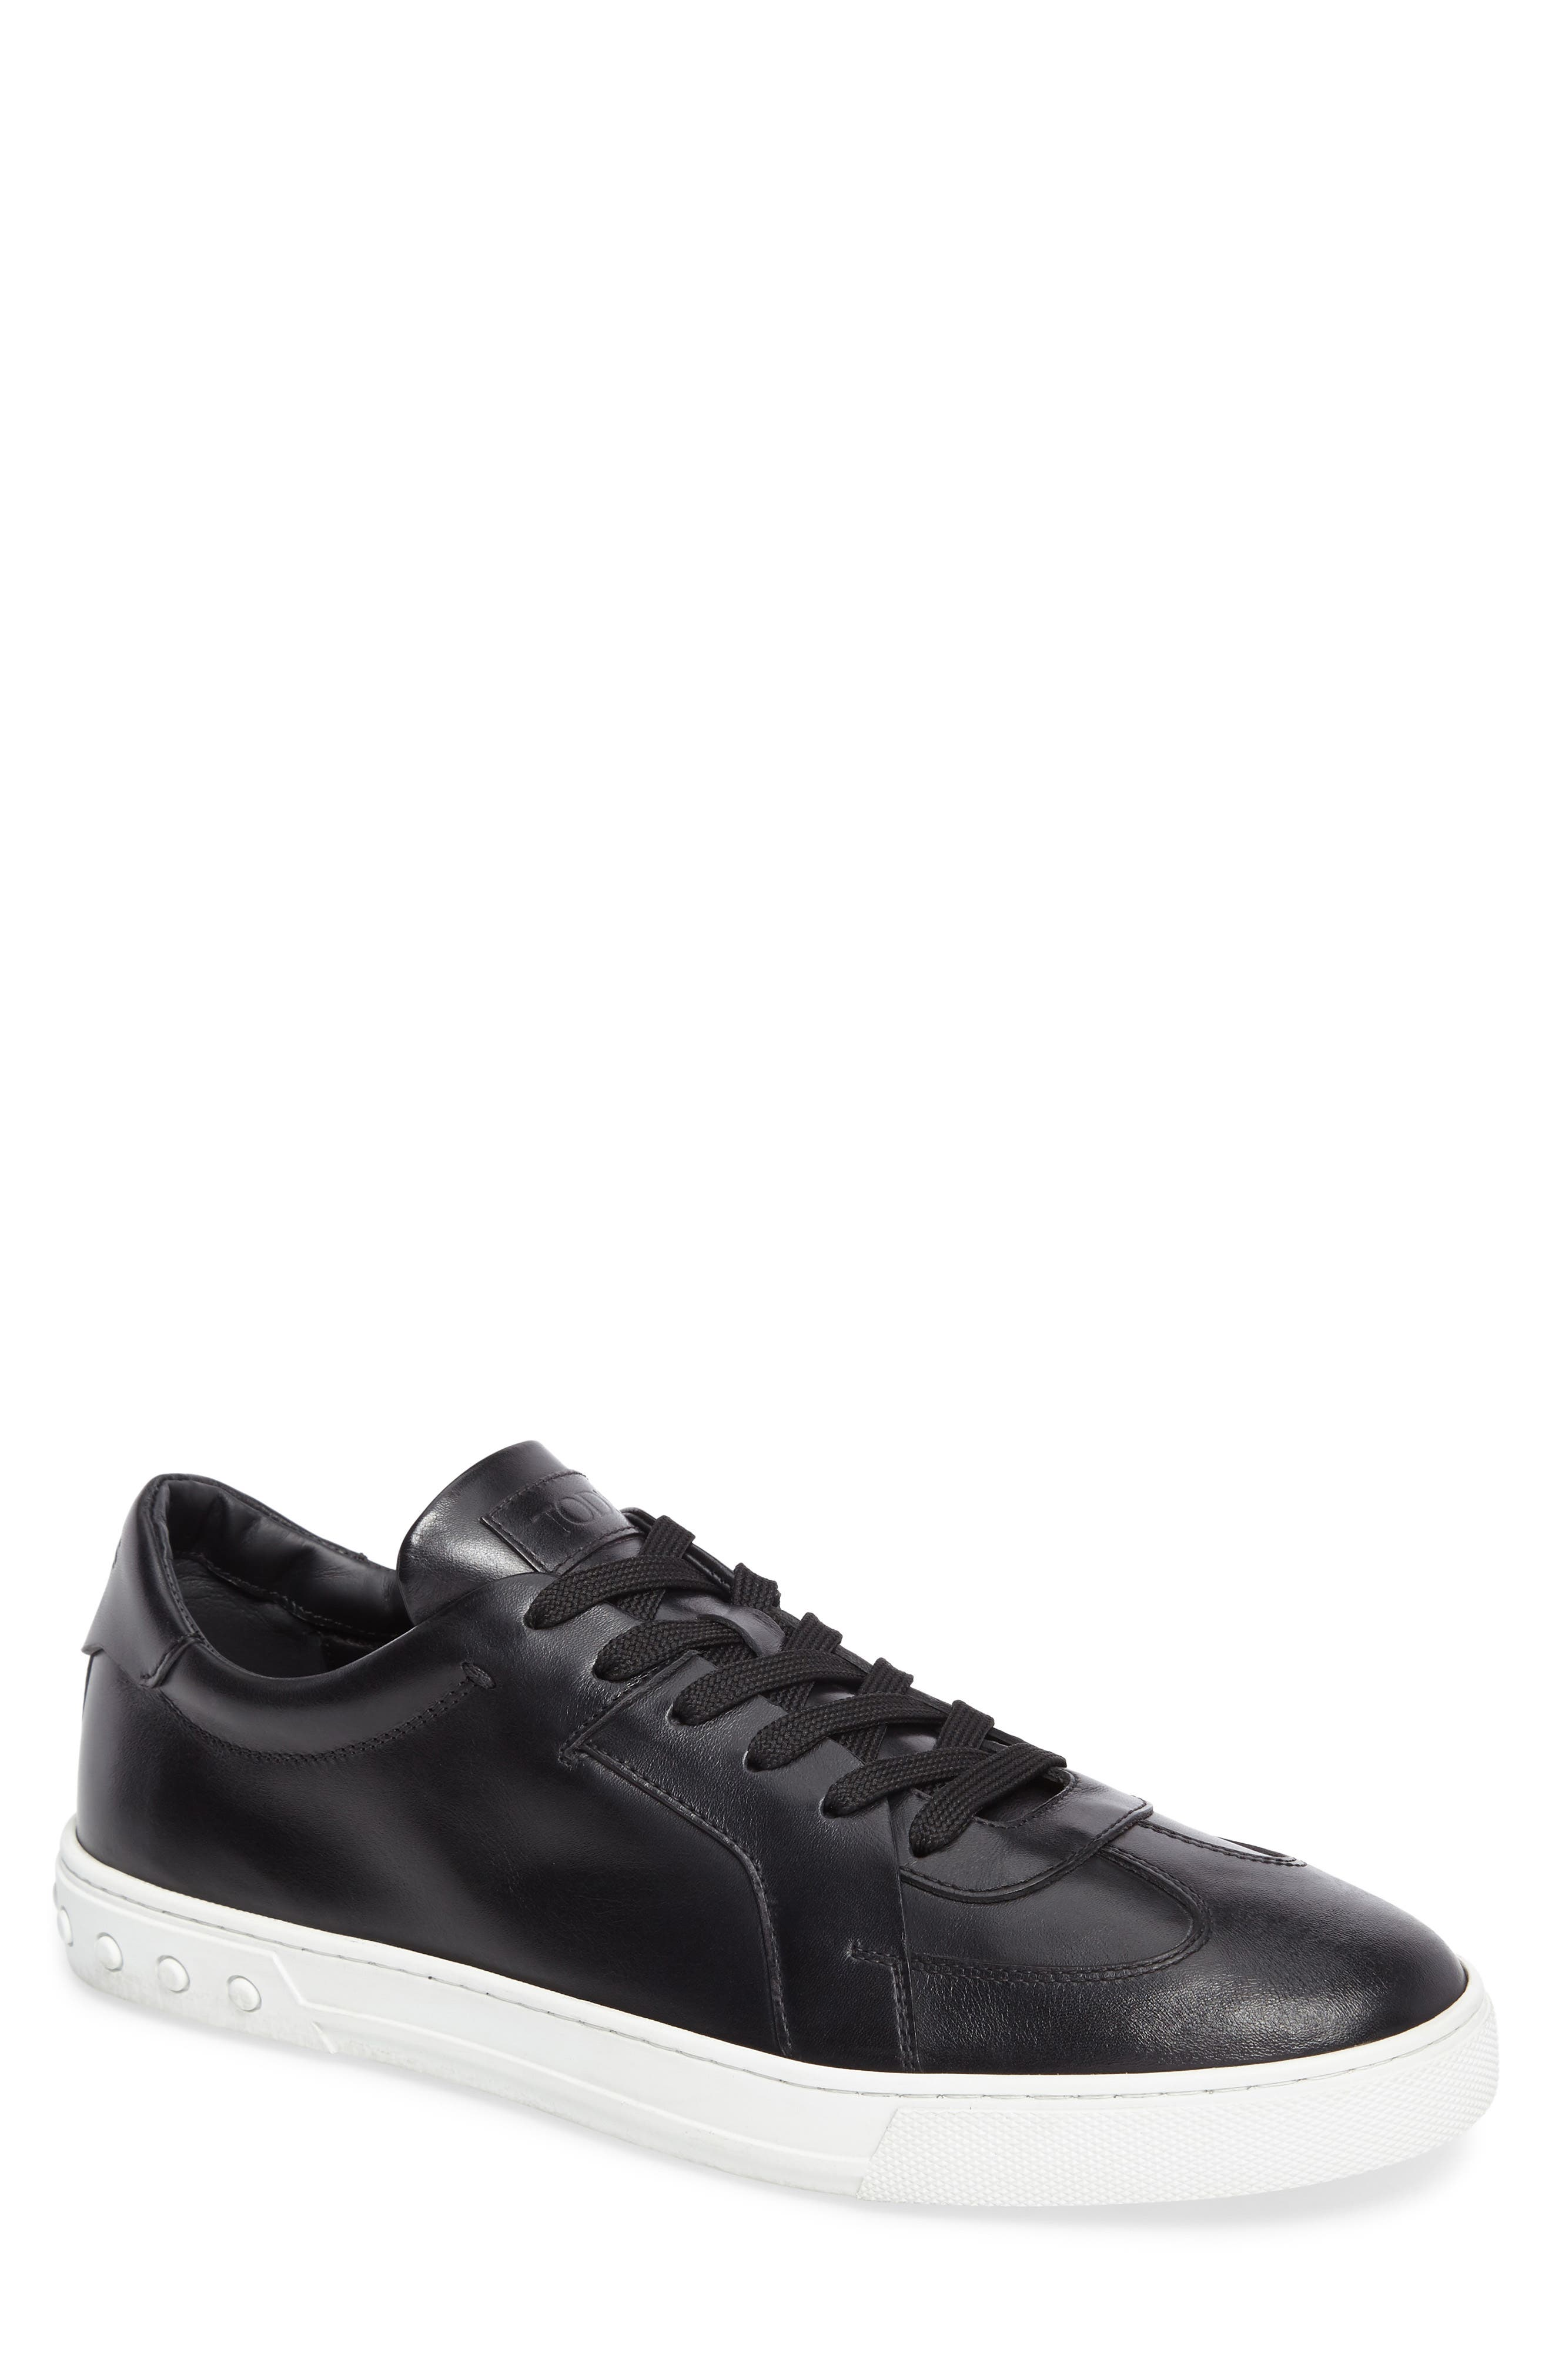 Cassetta Leather Sneaker,                             Main thumbnail 1, color,                             Black Leather